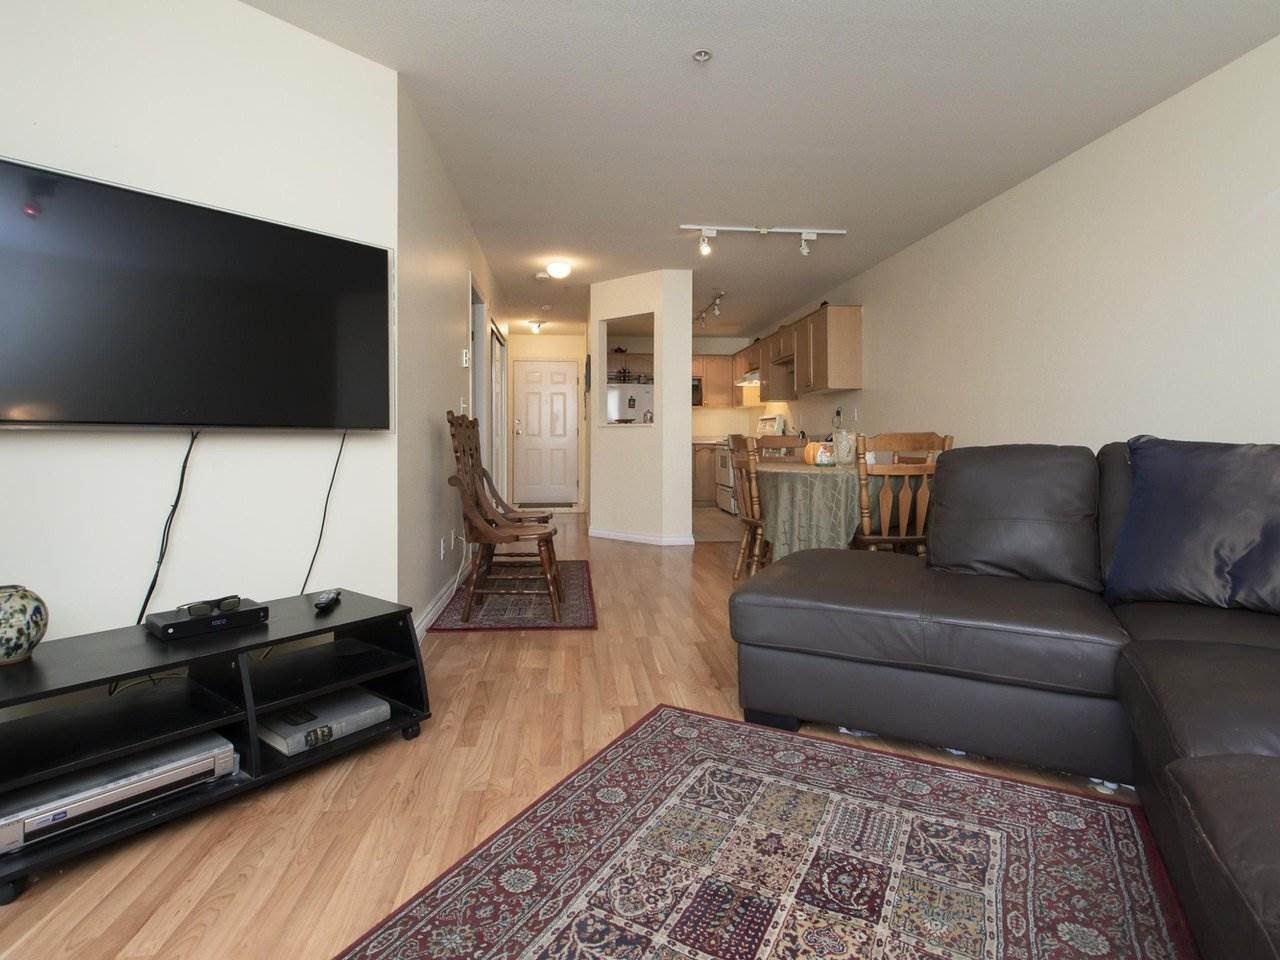 """Main Photo: 301 2615 JANE Street in Port Coquitlam: Central Pt Coquitlam Condo for sale in """"BURLEIGH GREEN"""" : MLS®# R2447351"""